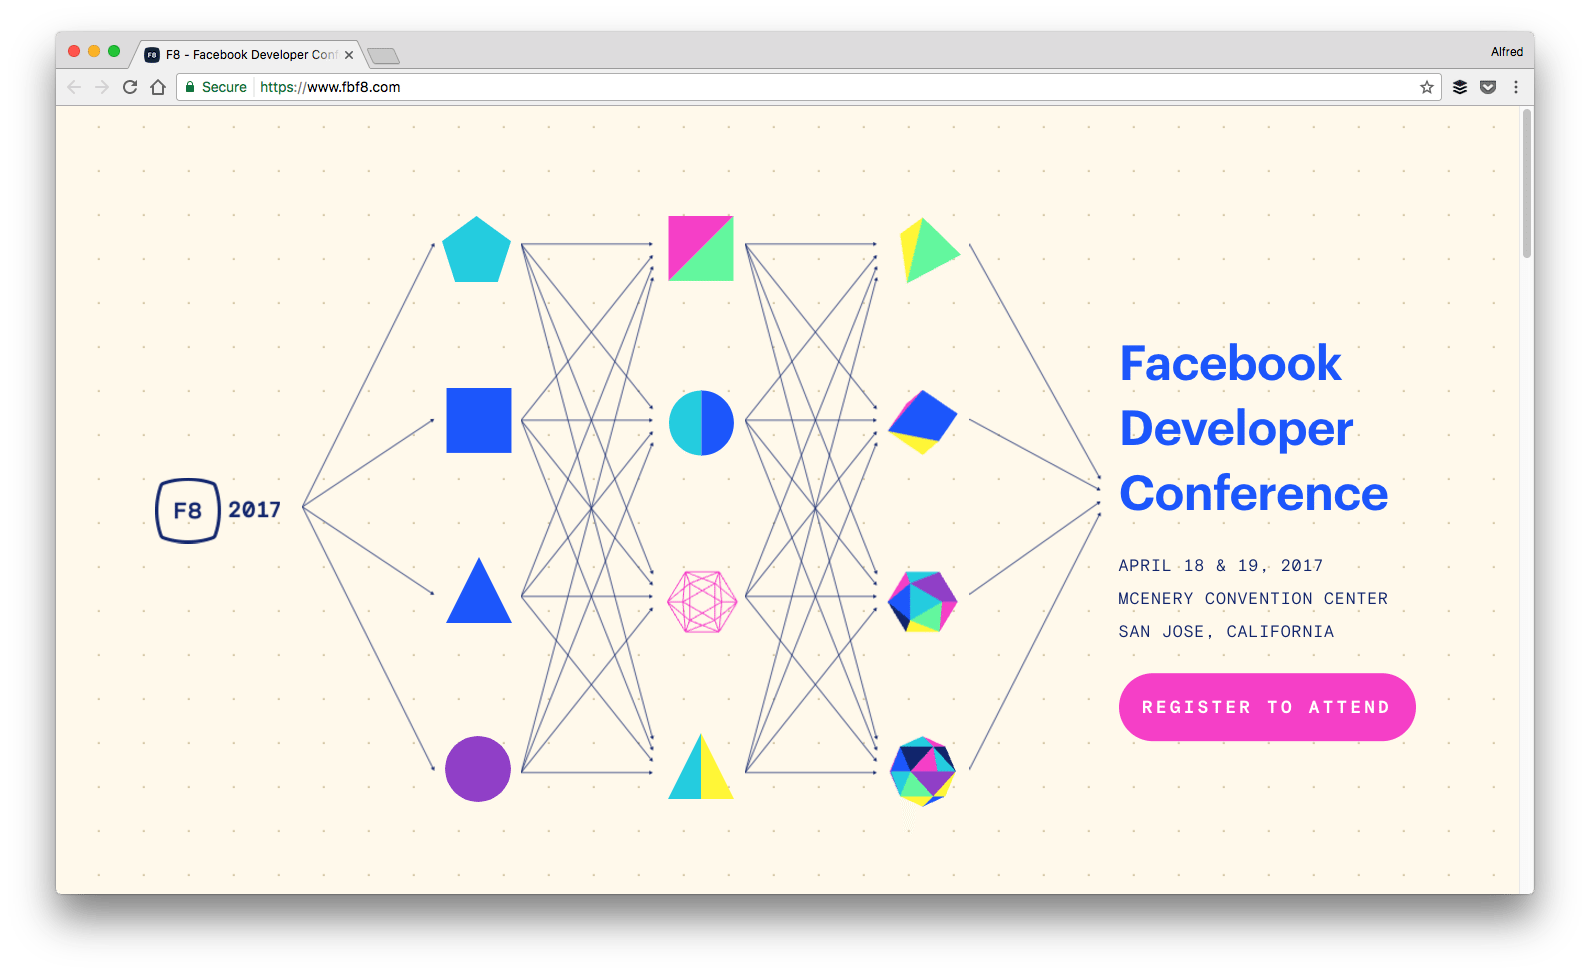 F8 Conference 2017